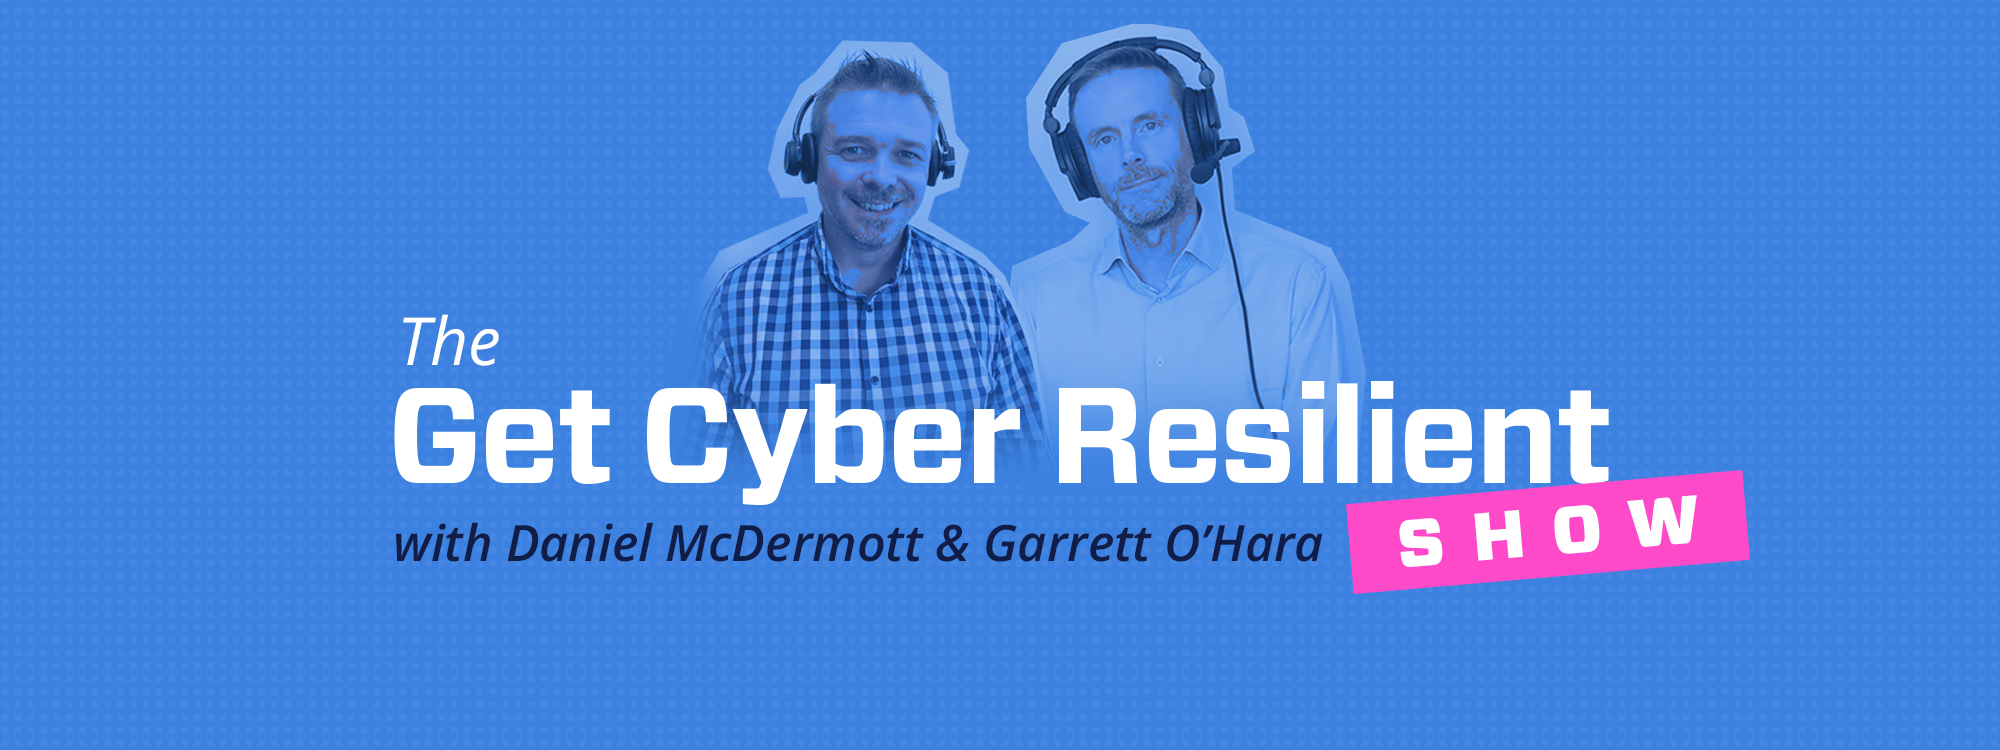 The Get Cyber Resilient Show Episode #27